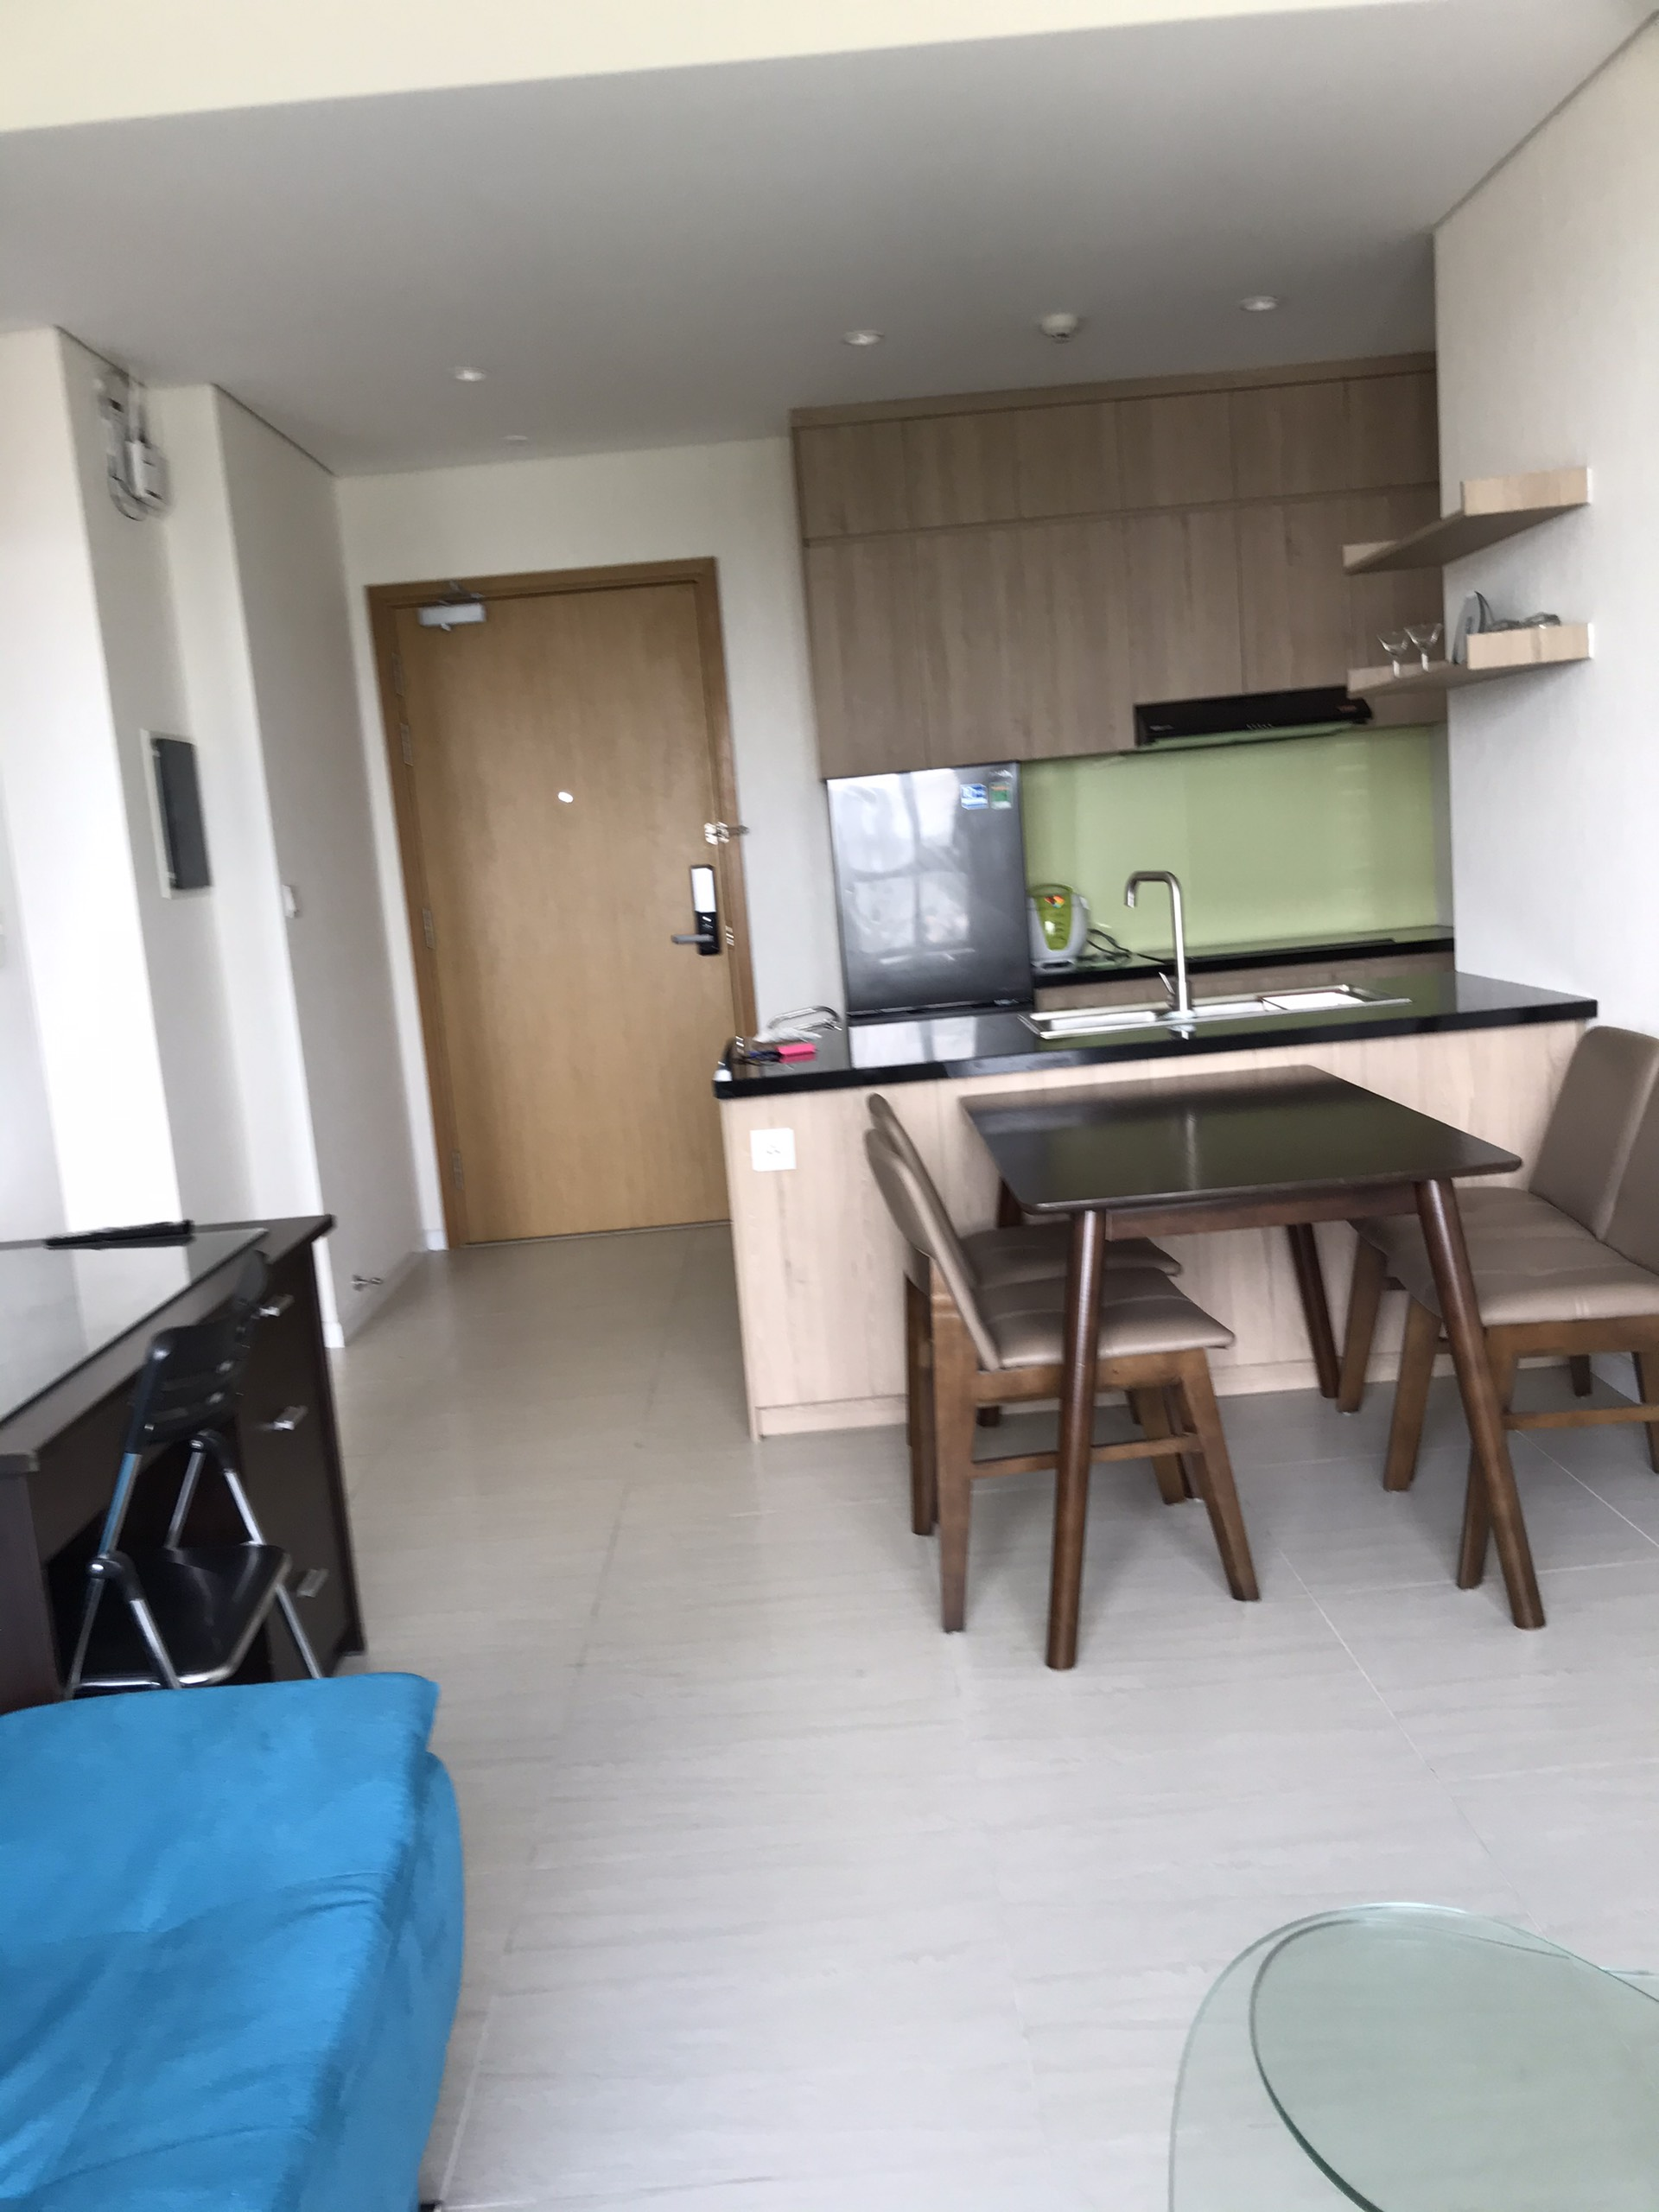 DI0987 - Diamond Island Apartment For Sale & Sale in Ho Chi Minh City - 1 bedroom